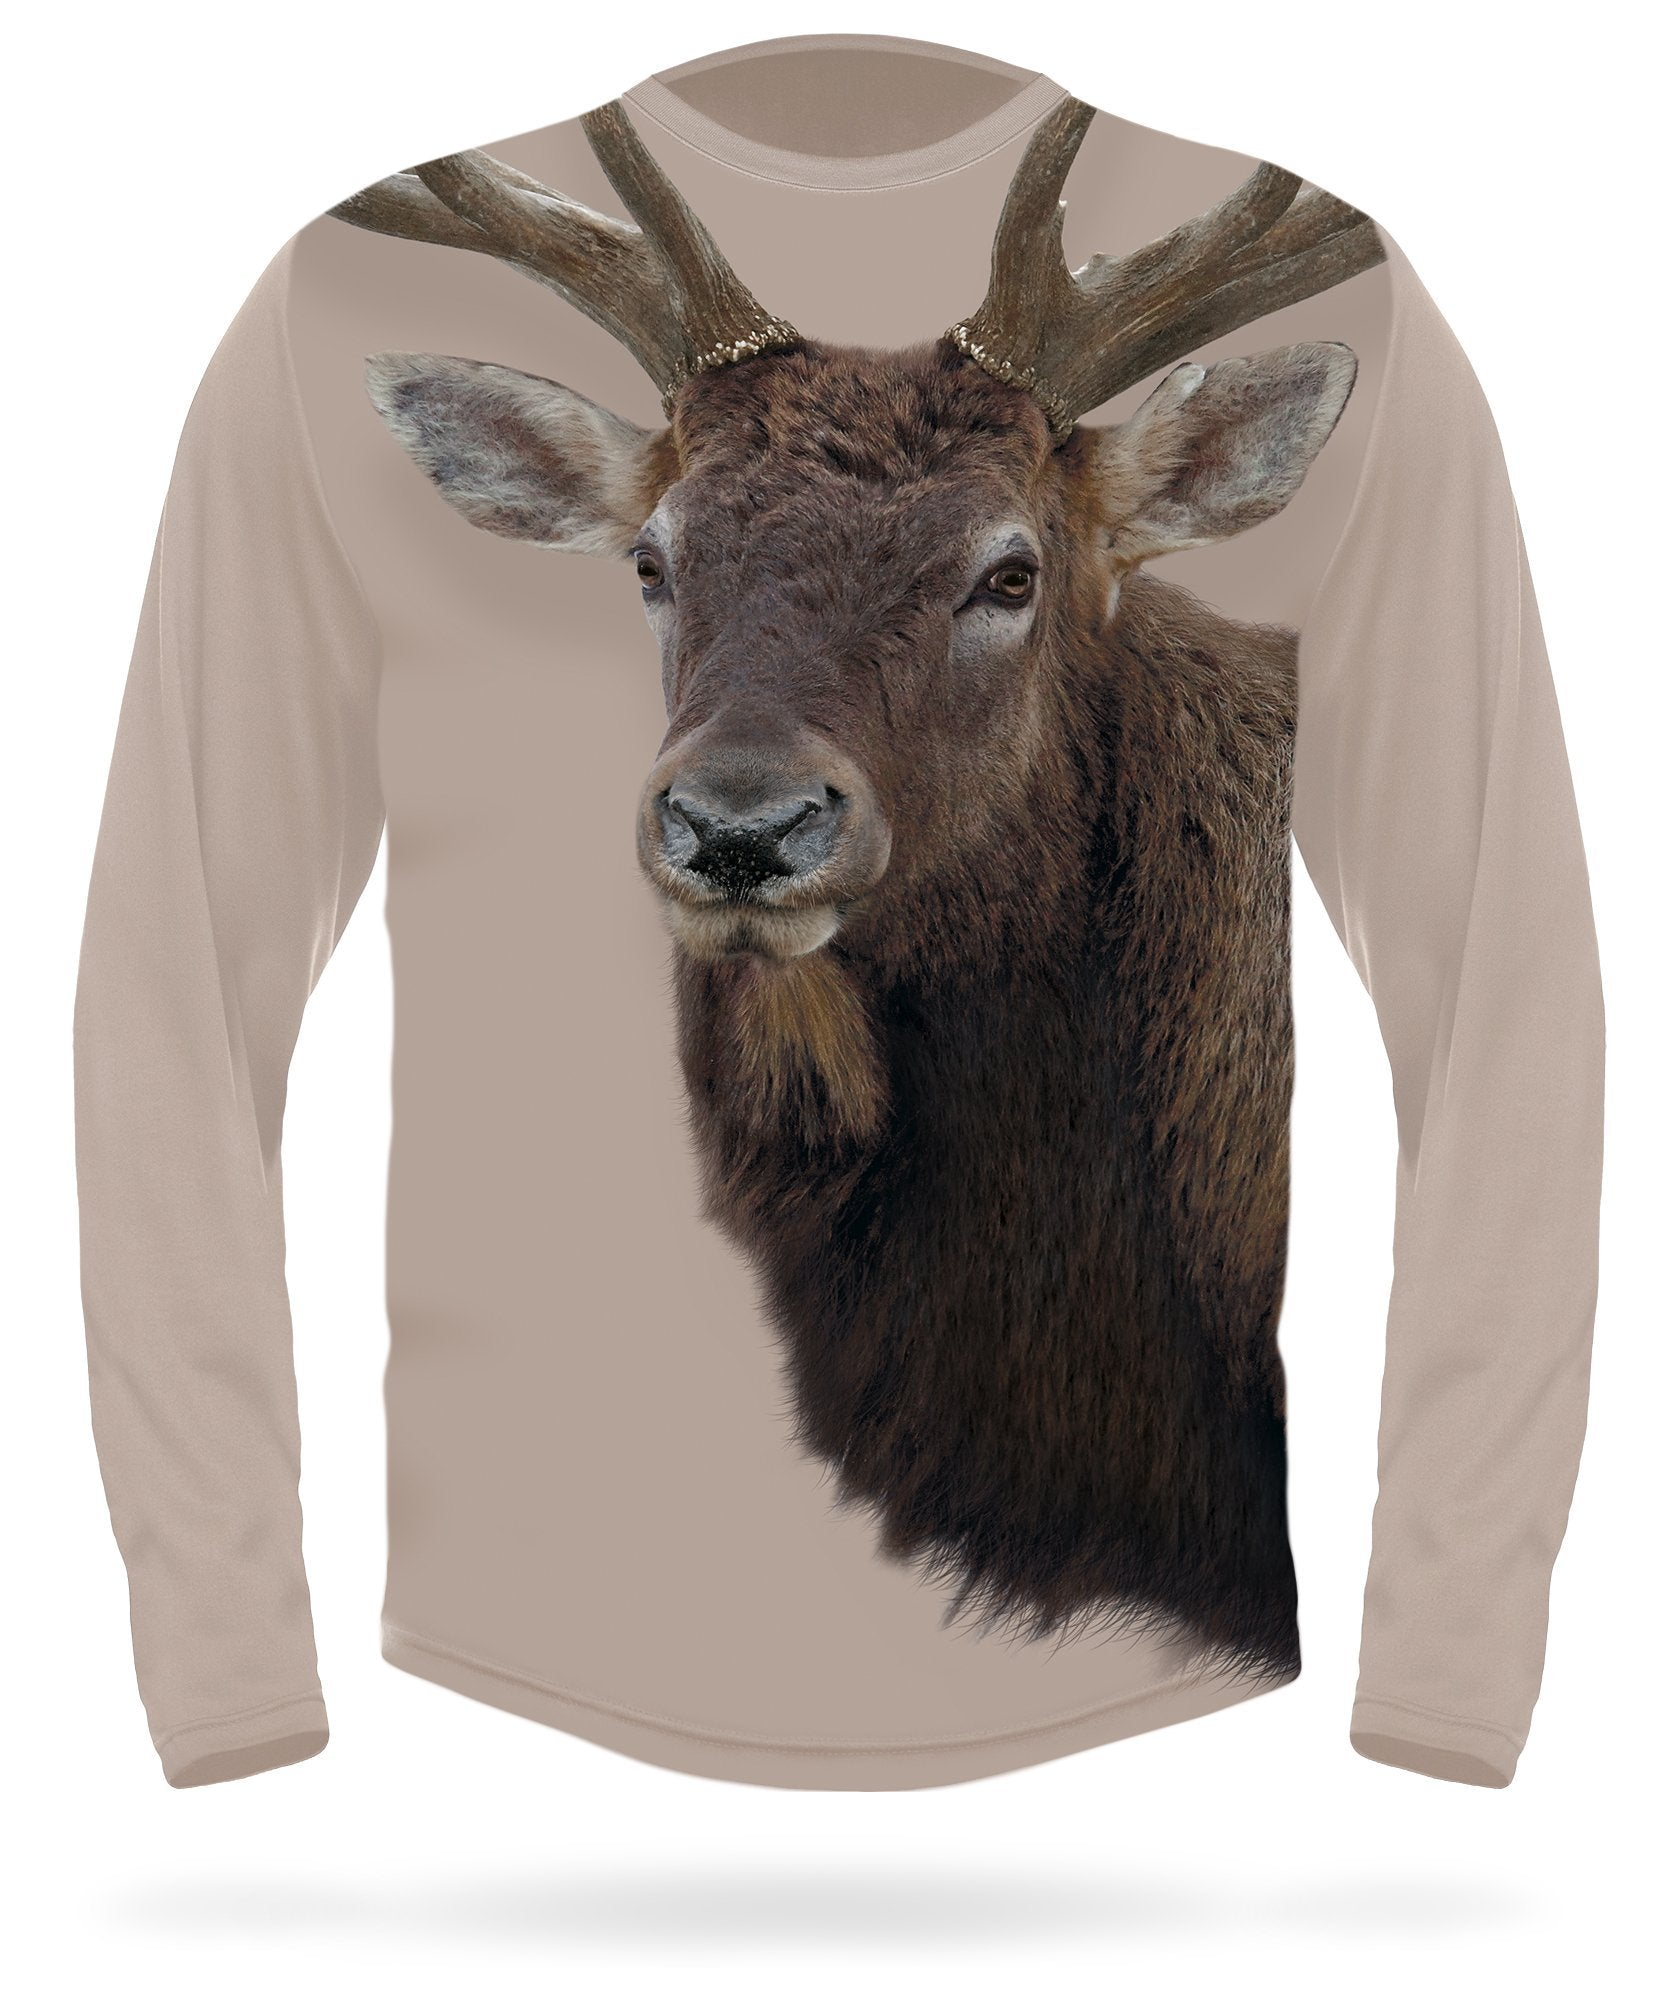 Rocky Mountain Elk T-Shirt - Long sleeve